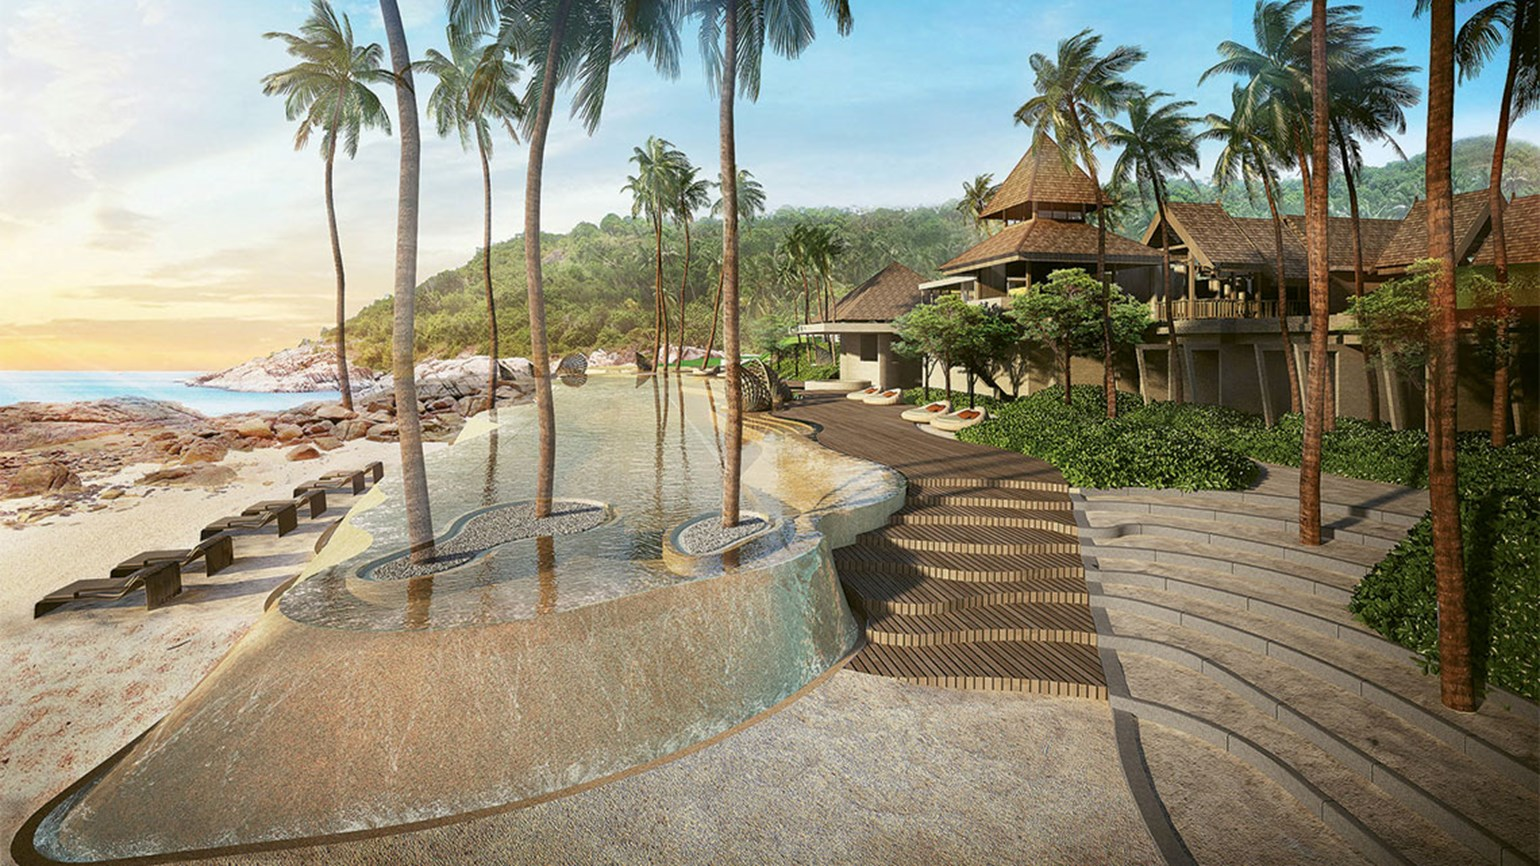 Ritz-Carlton hotel opens on Thai island